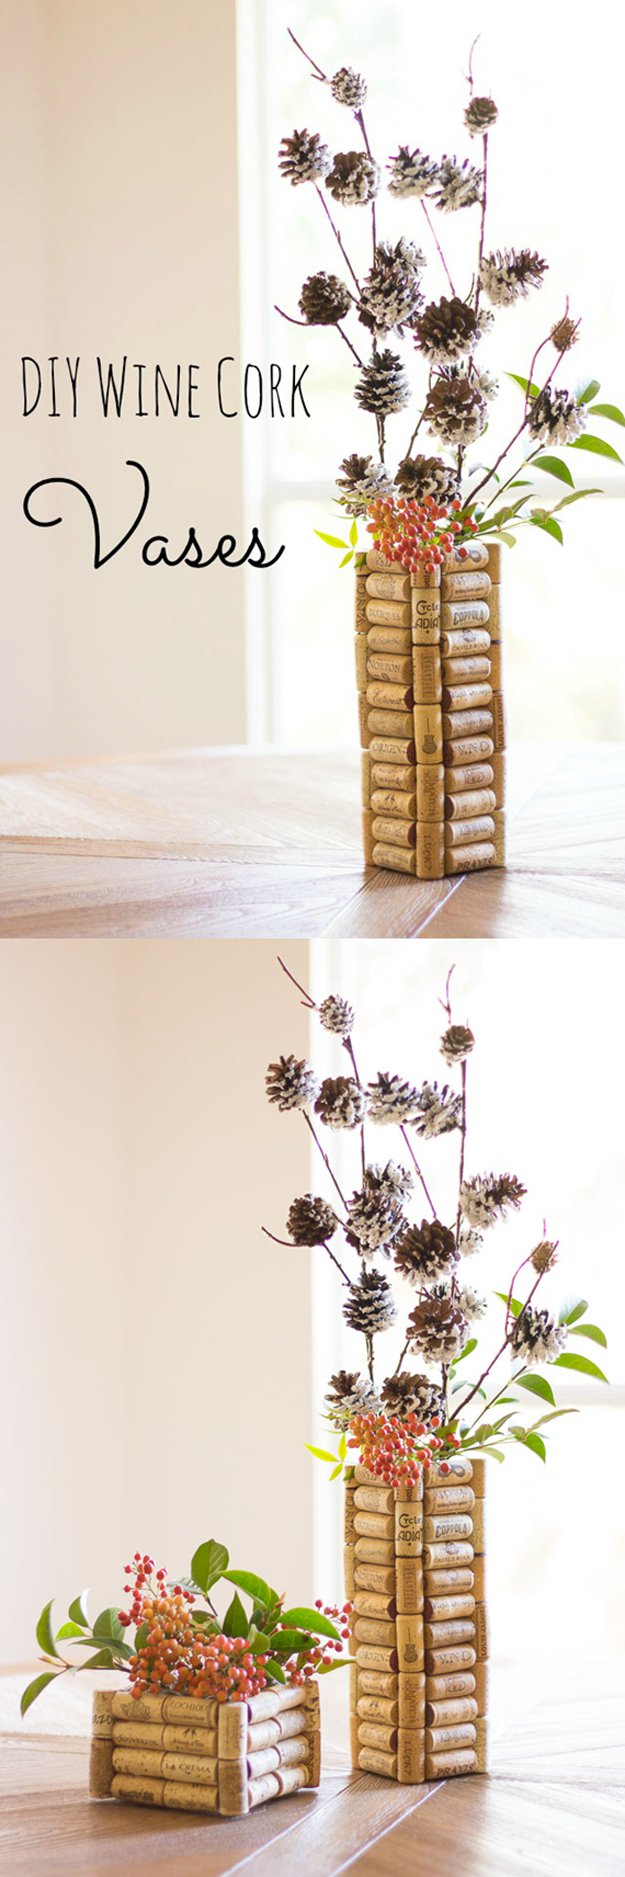 30 Wine Cork Vases